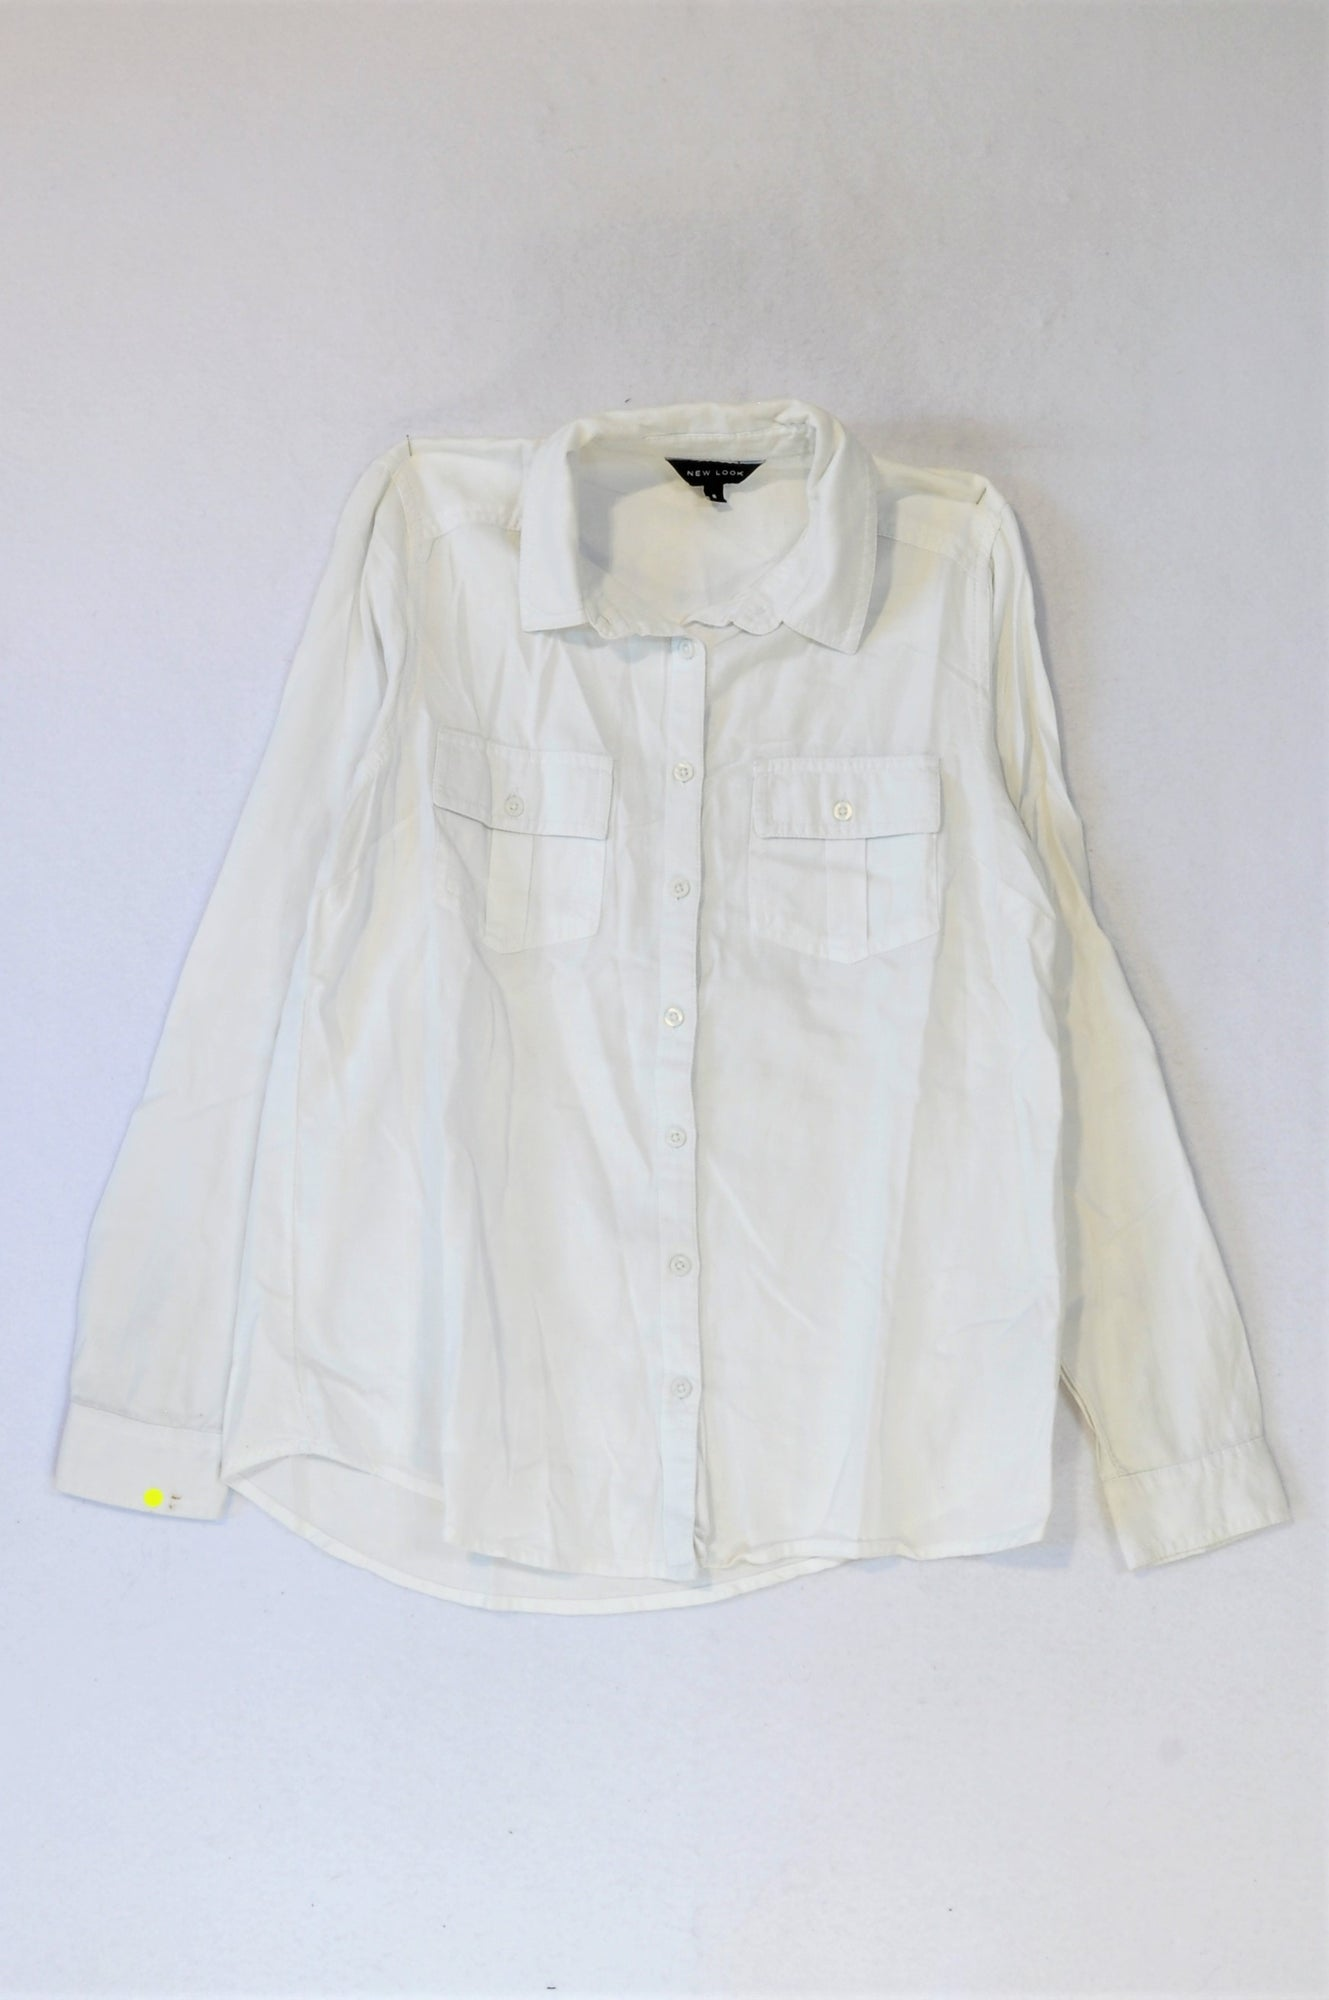 New Look White Button Up Shirt Women Size 8